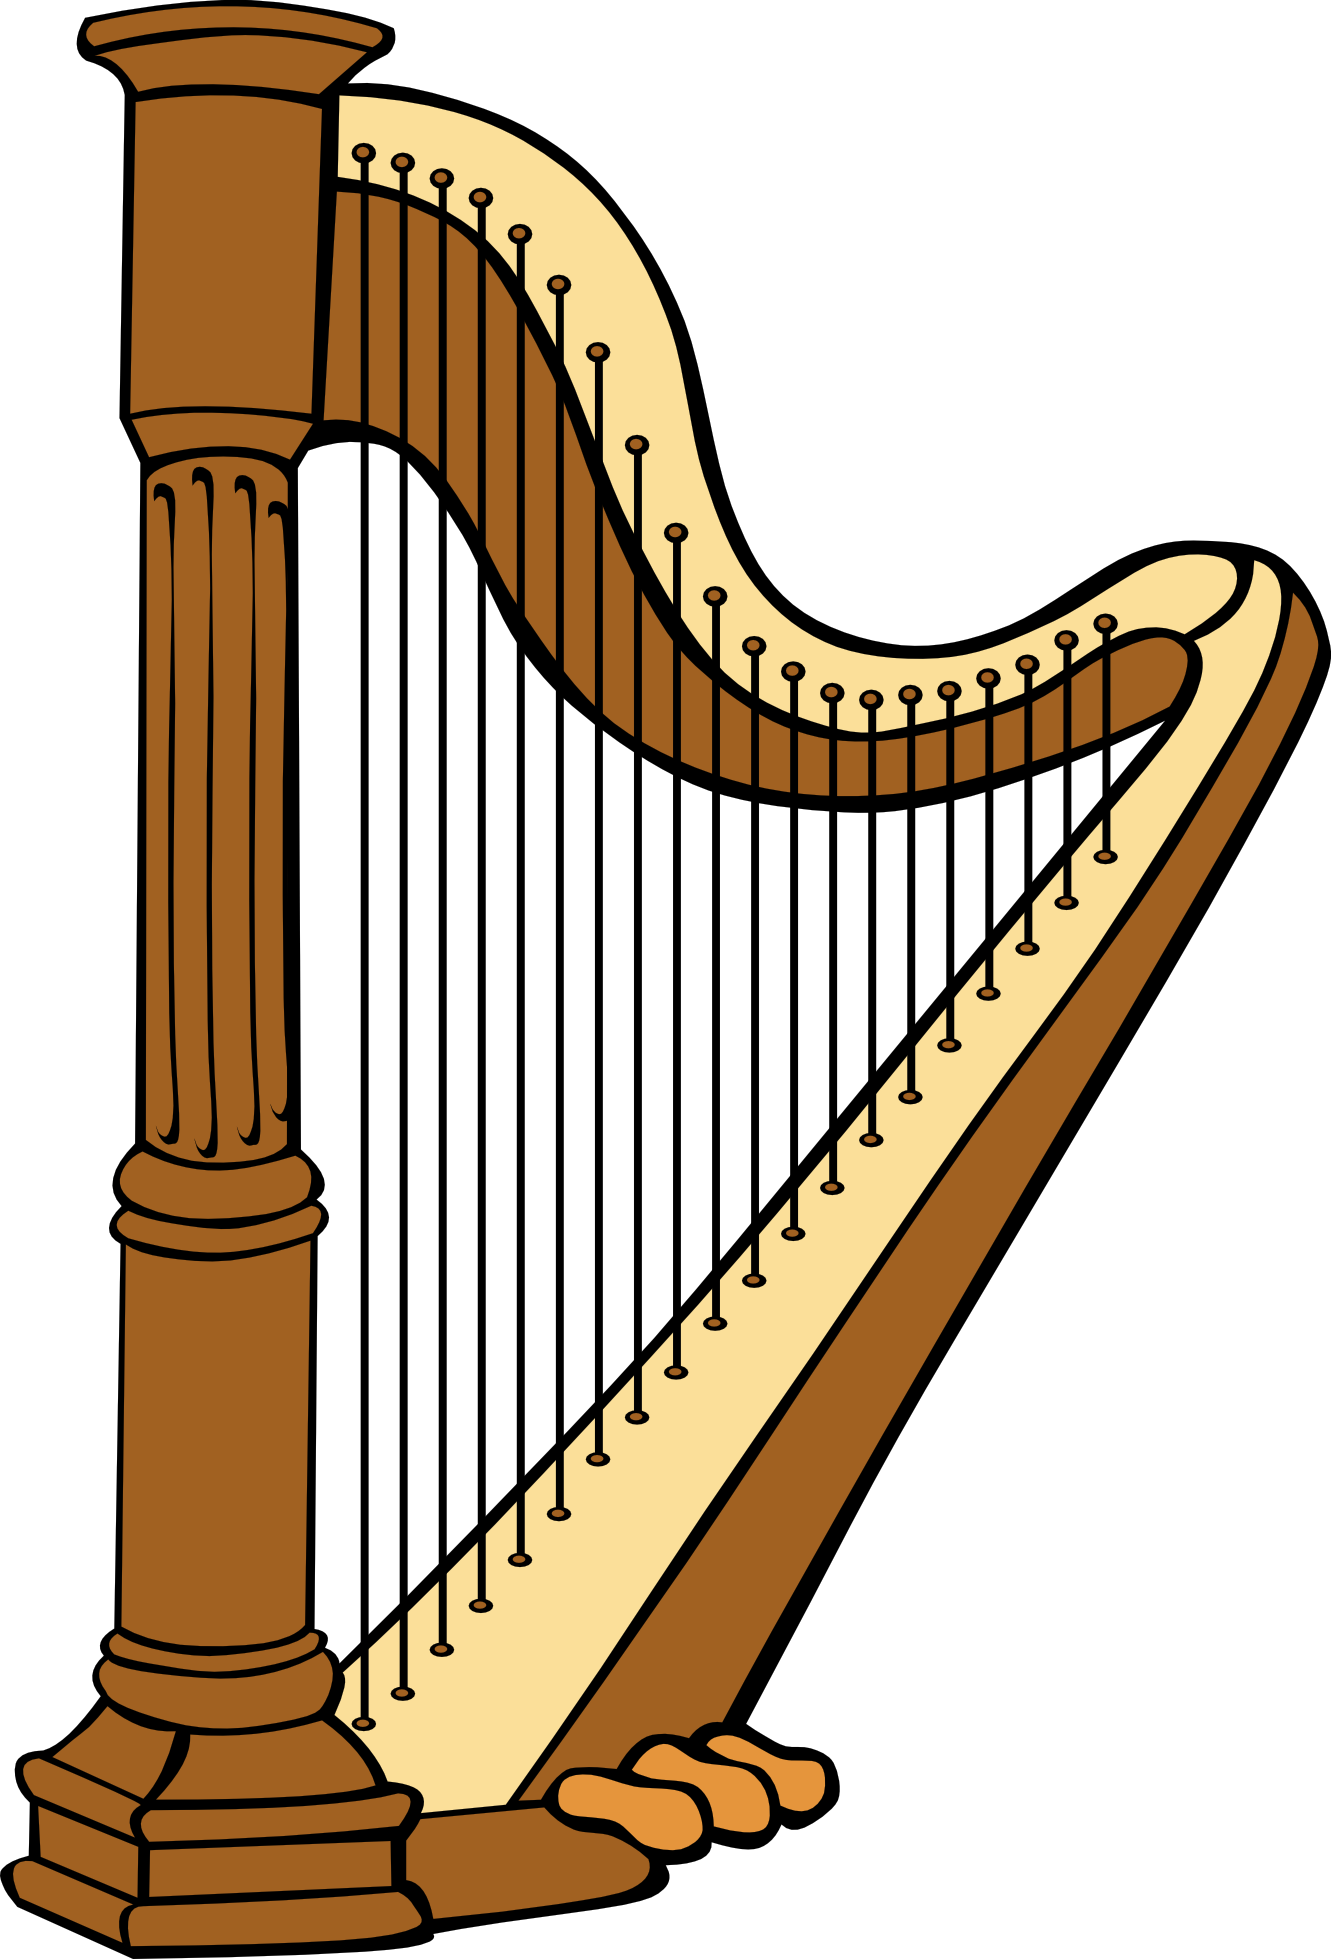 Harp 20clipart | Clipart Panda - Free Clipart Images